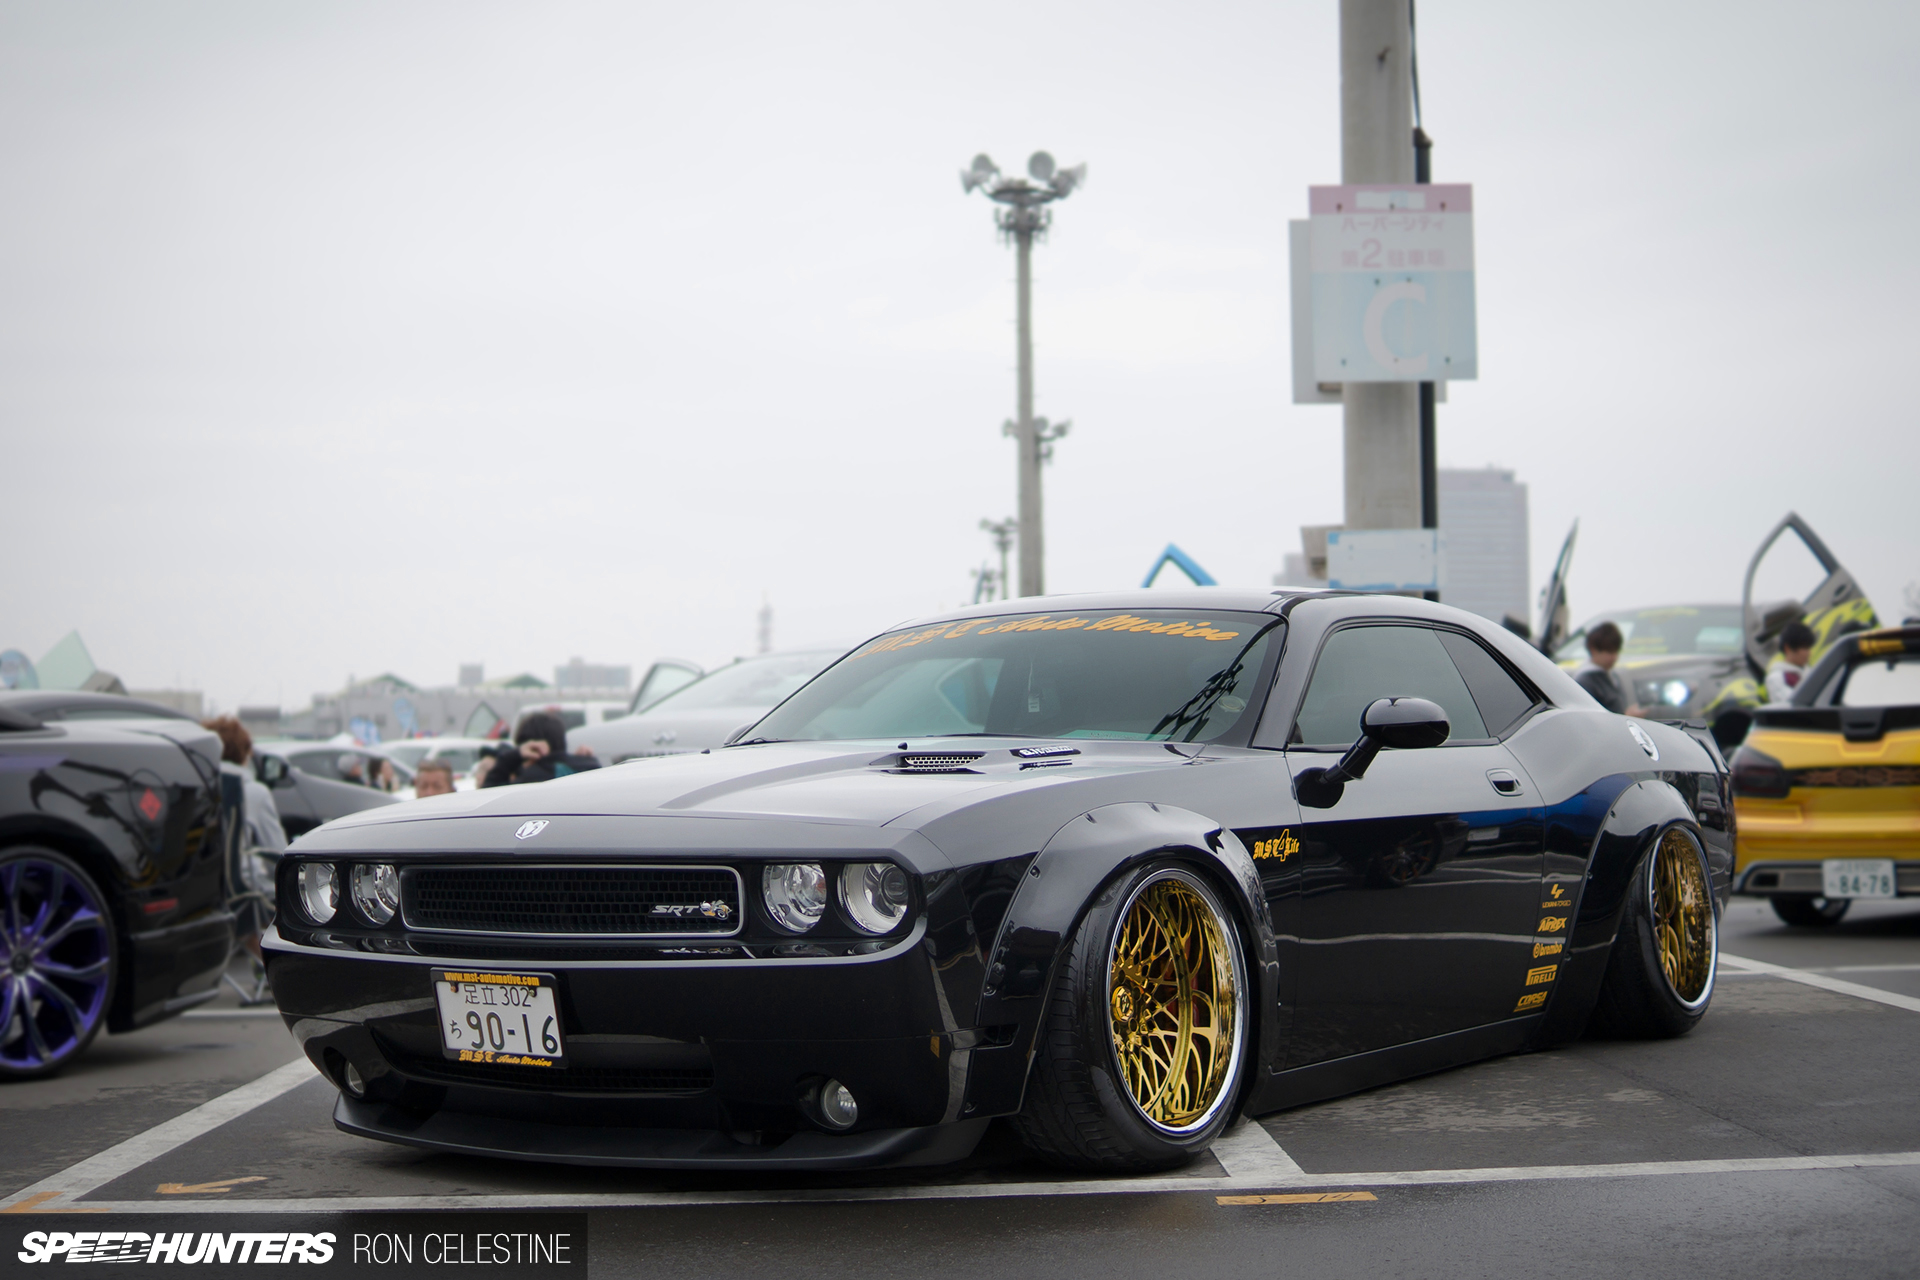 Dodge Challenger Hellcat For Sale >> East Meets West: A Liberty Walk SRT8 Challenger - Speedhunters